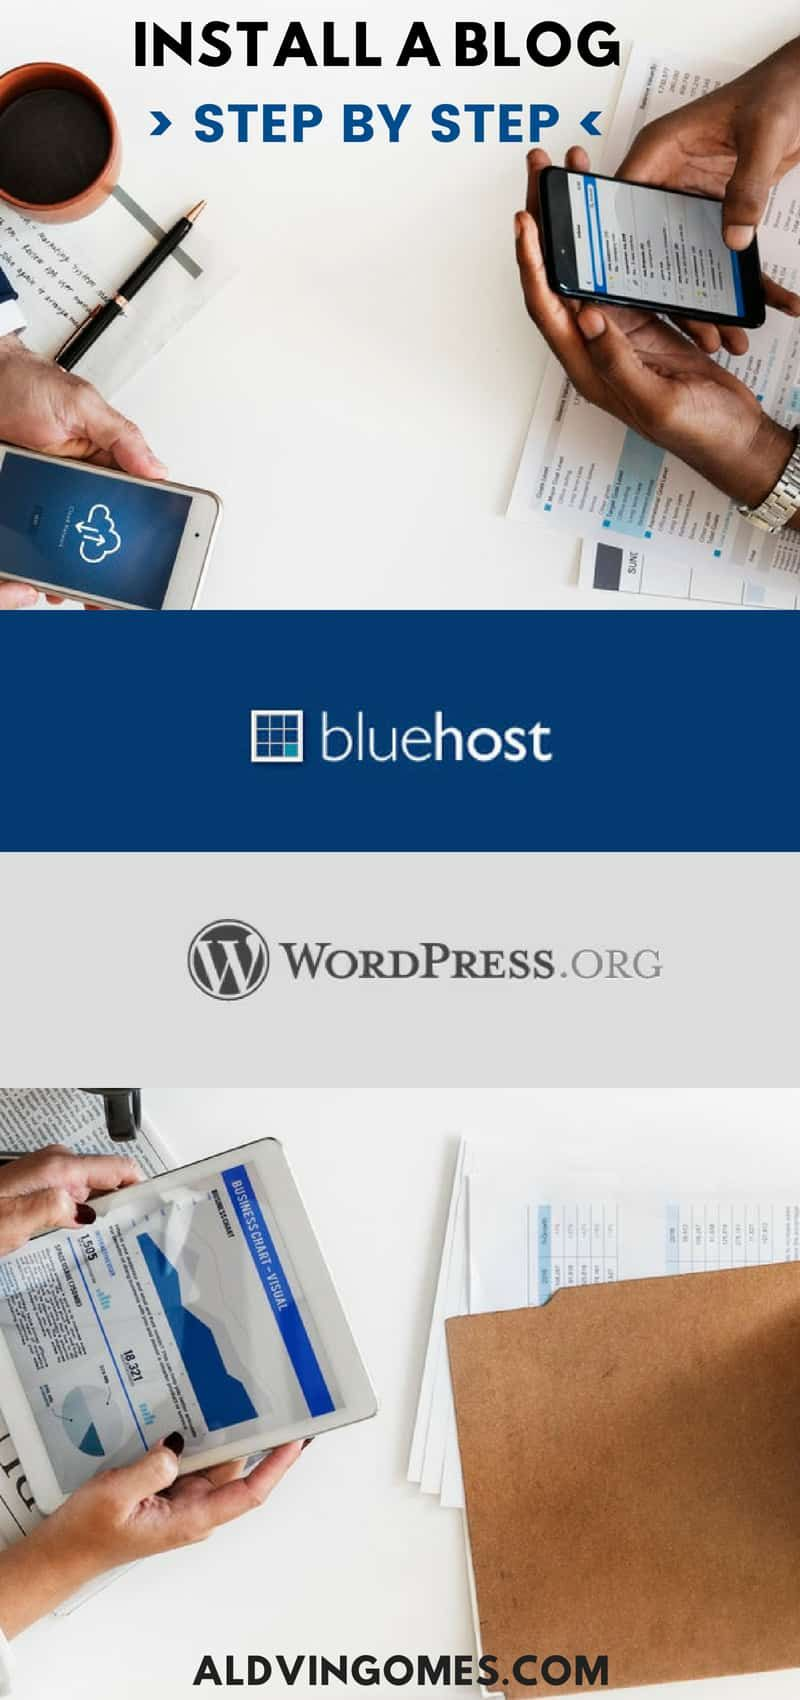 How to Install WordPress on Bluehost 2019 (With images